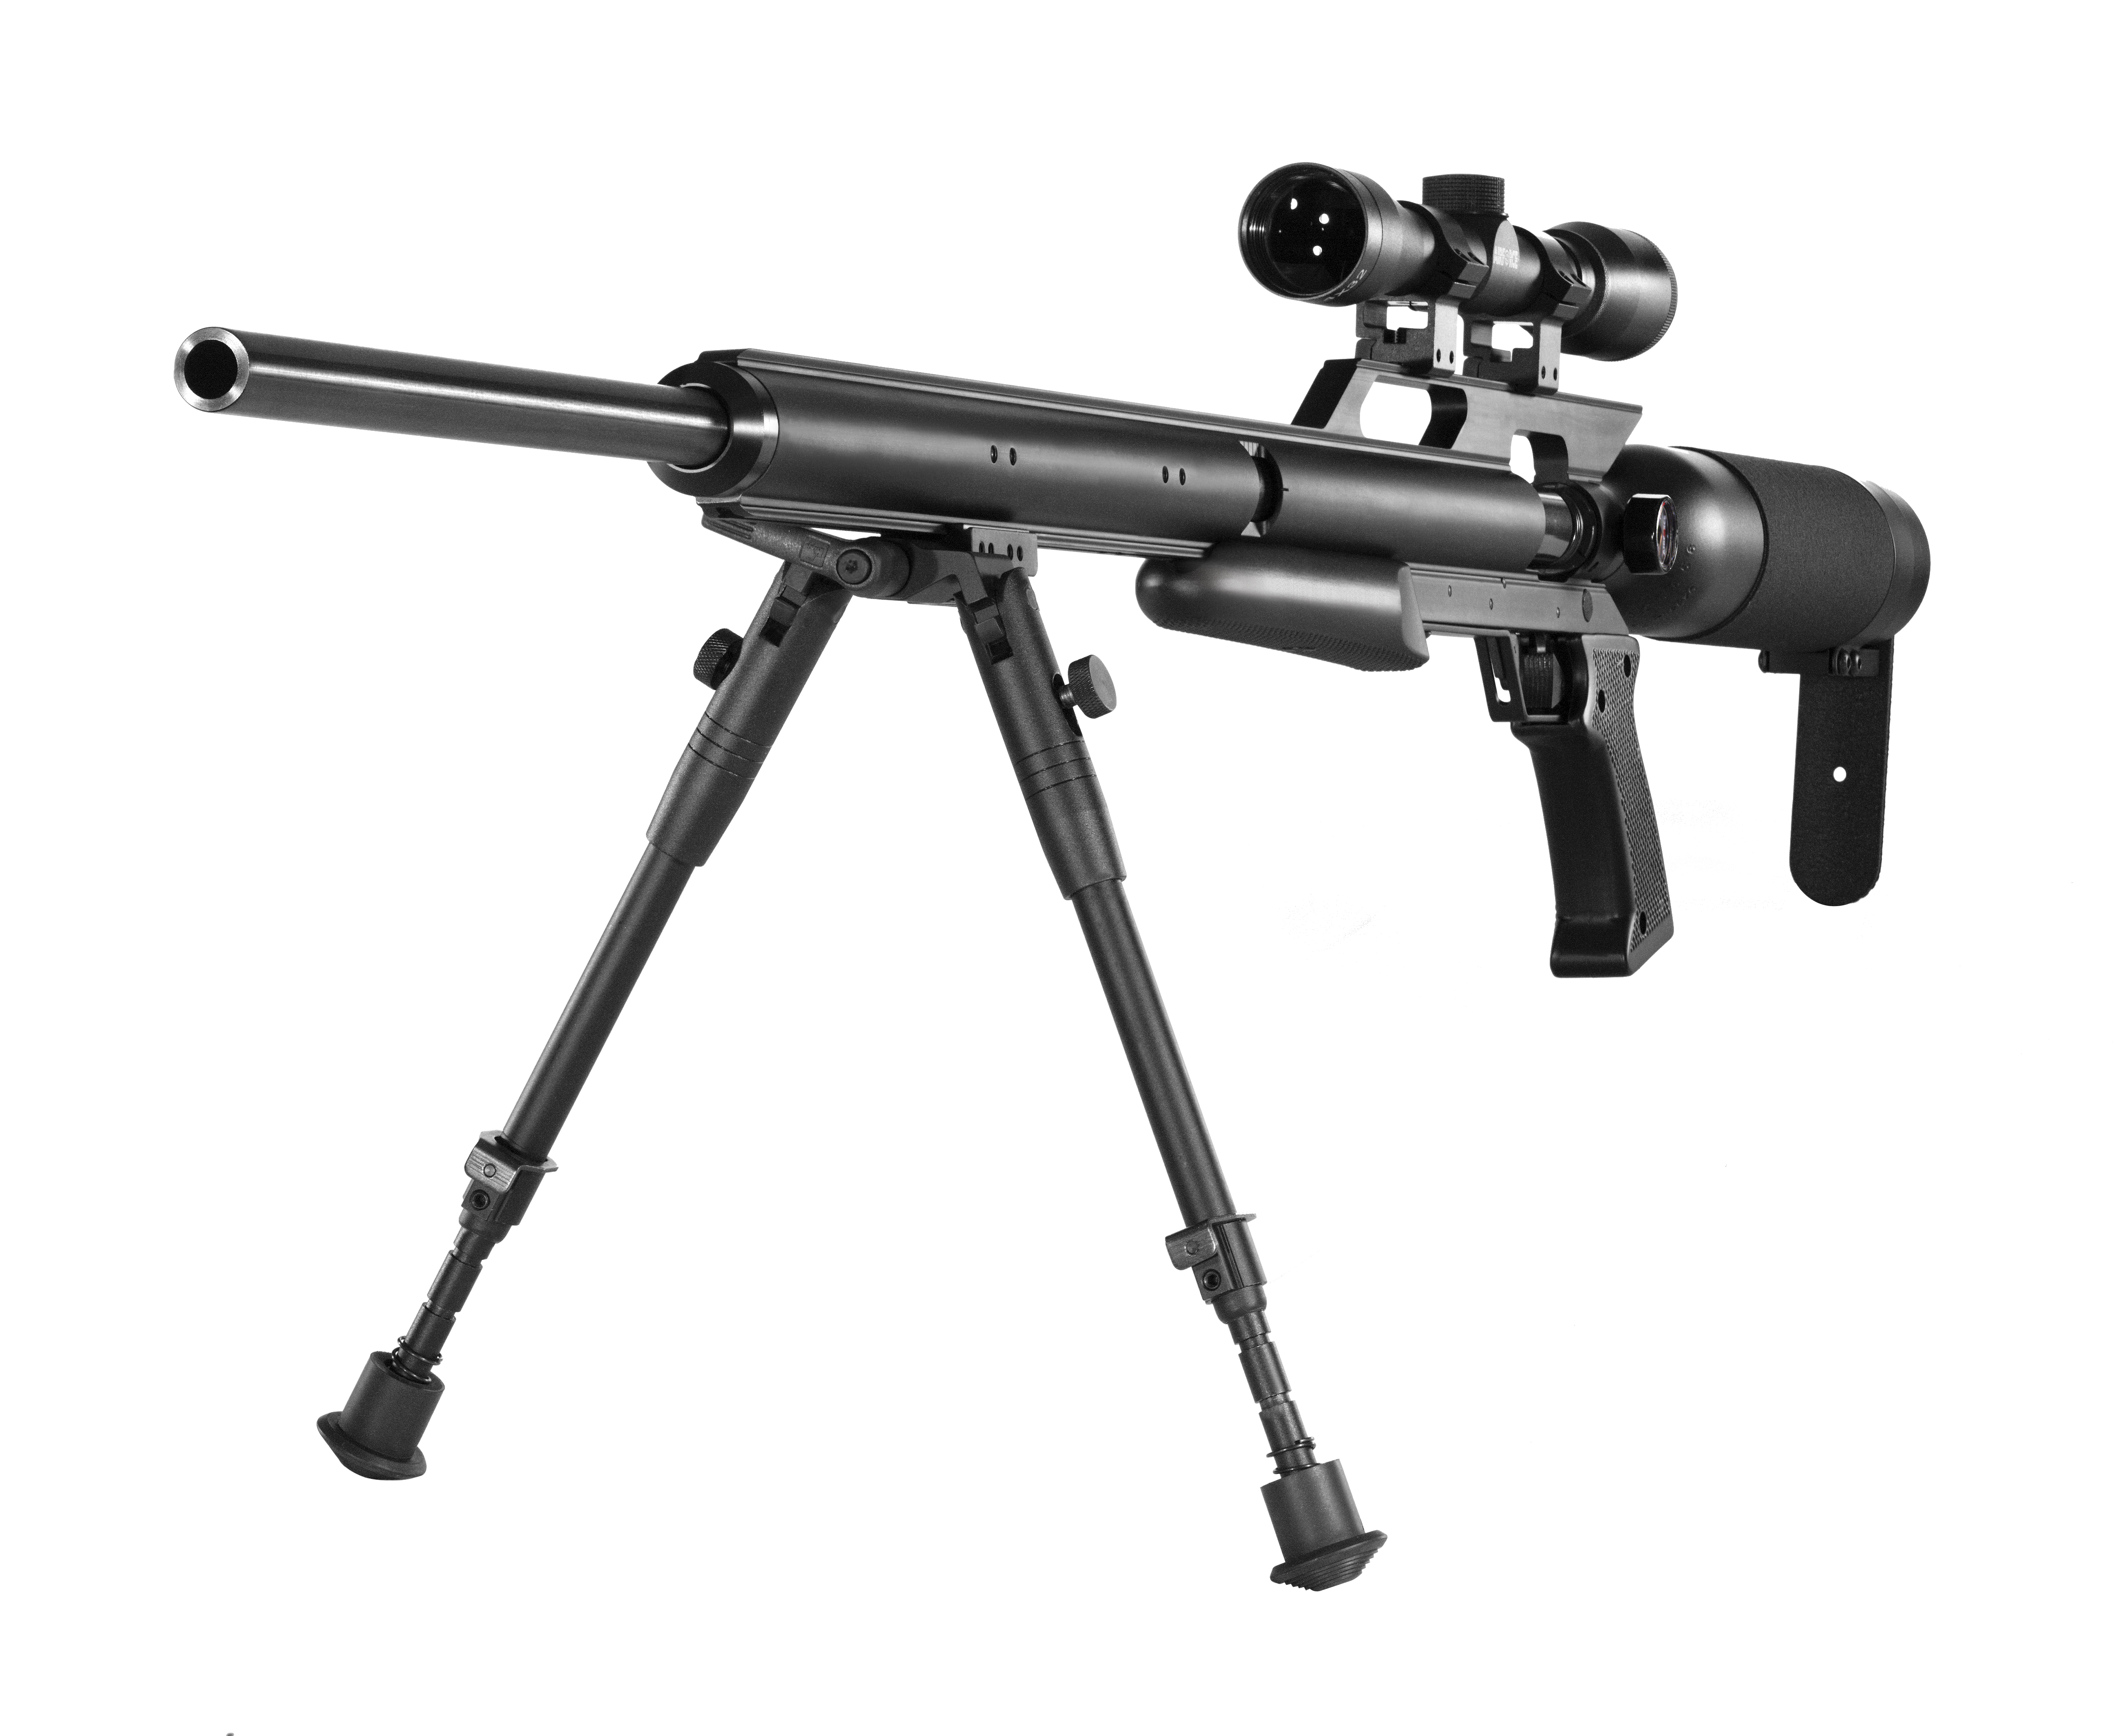 AirForce Airguns - World's Most Powerful Production Air Rifle ...